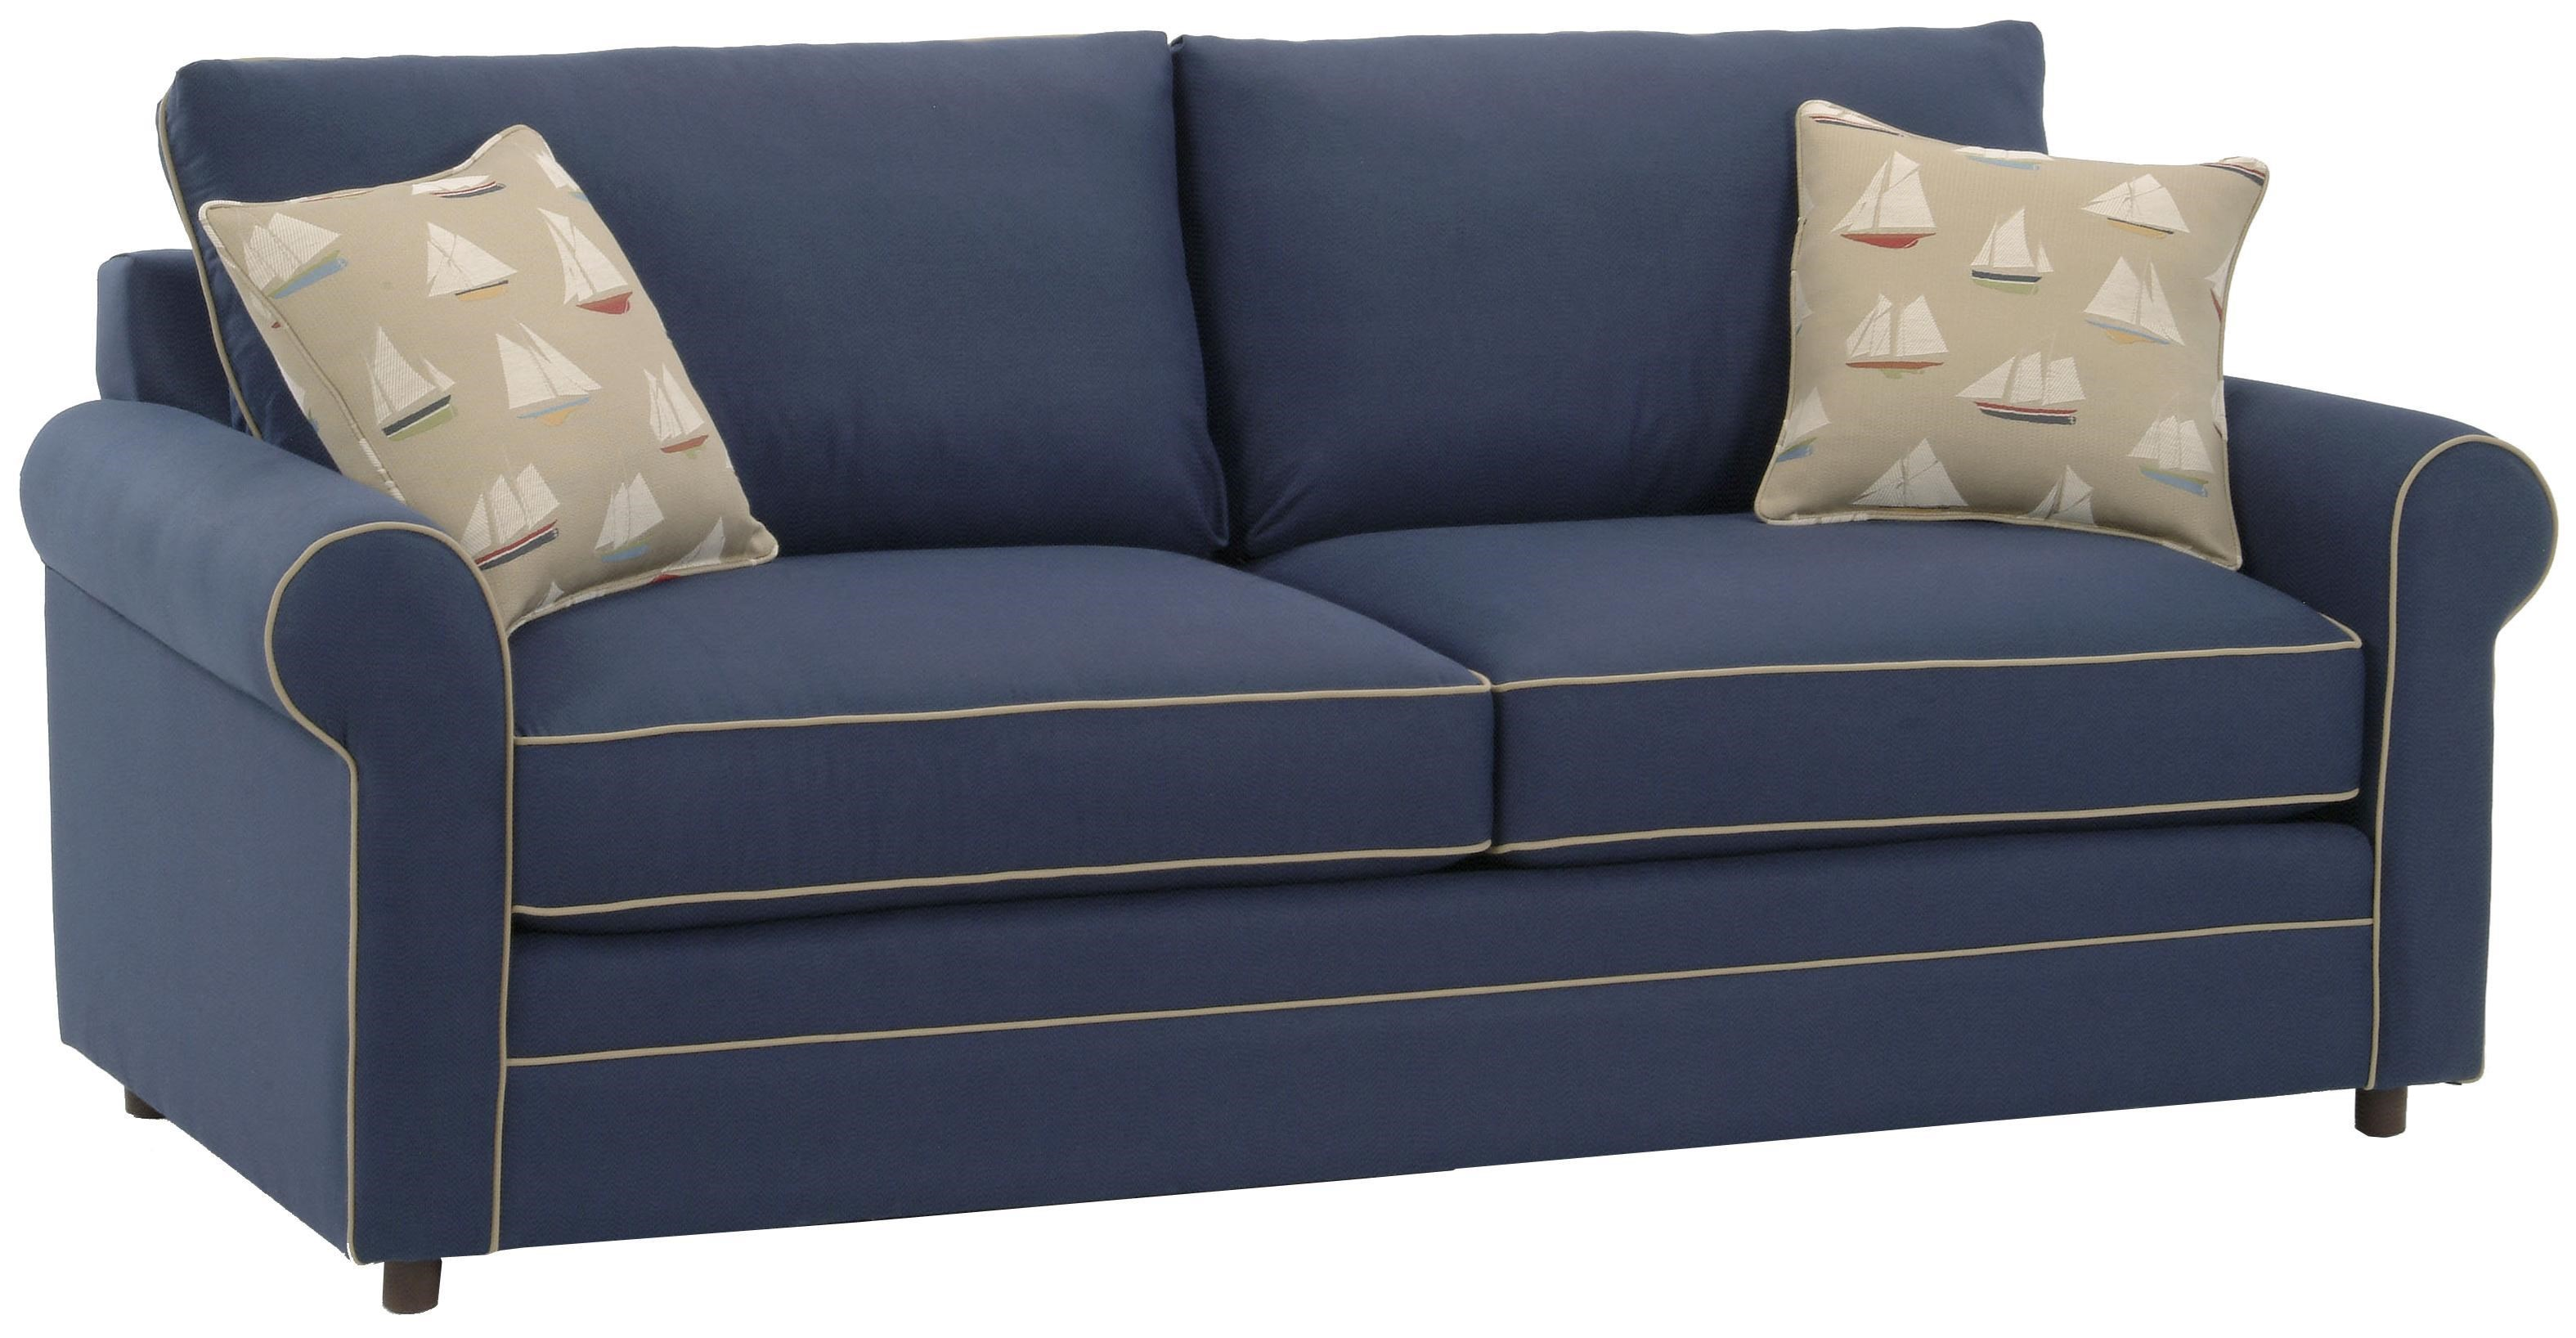 Upholstered Sleeper Sofa with Welt Cord Trim